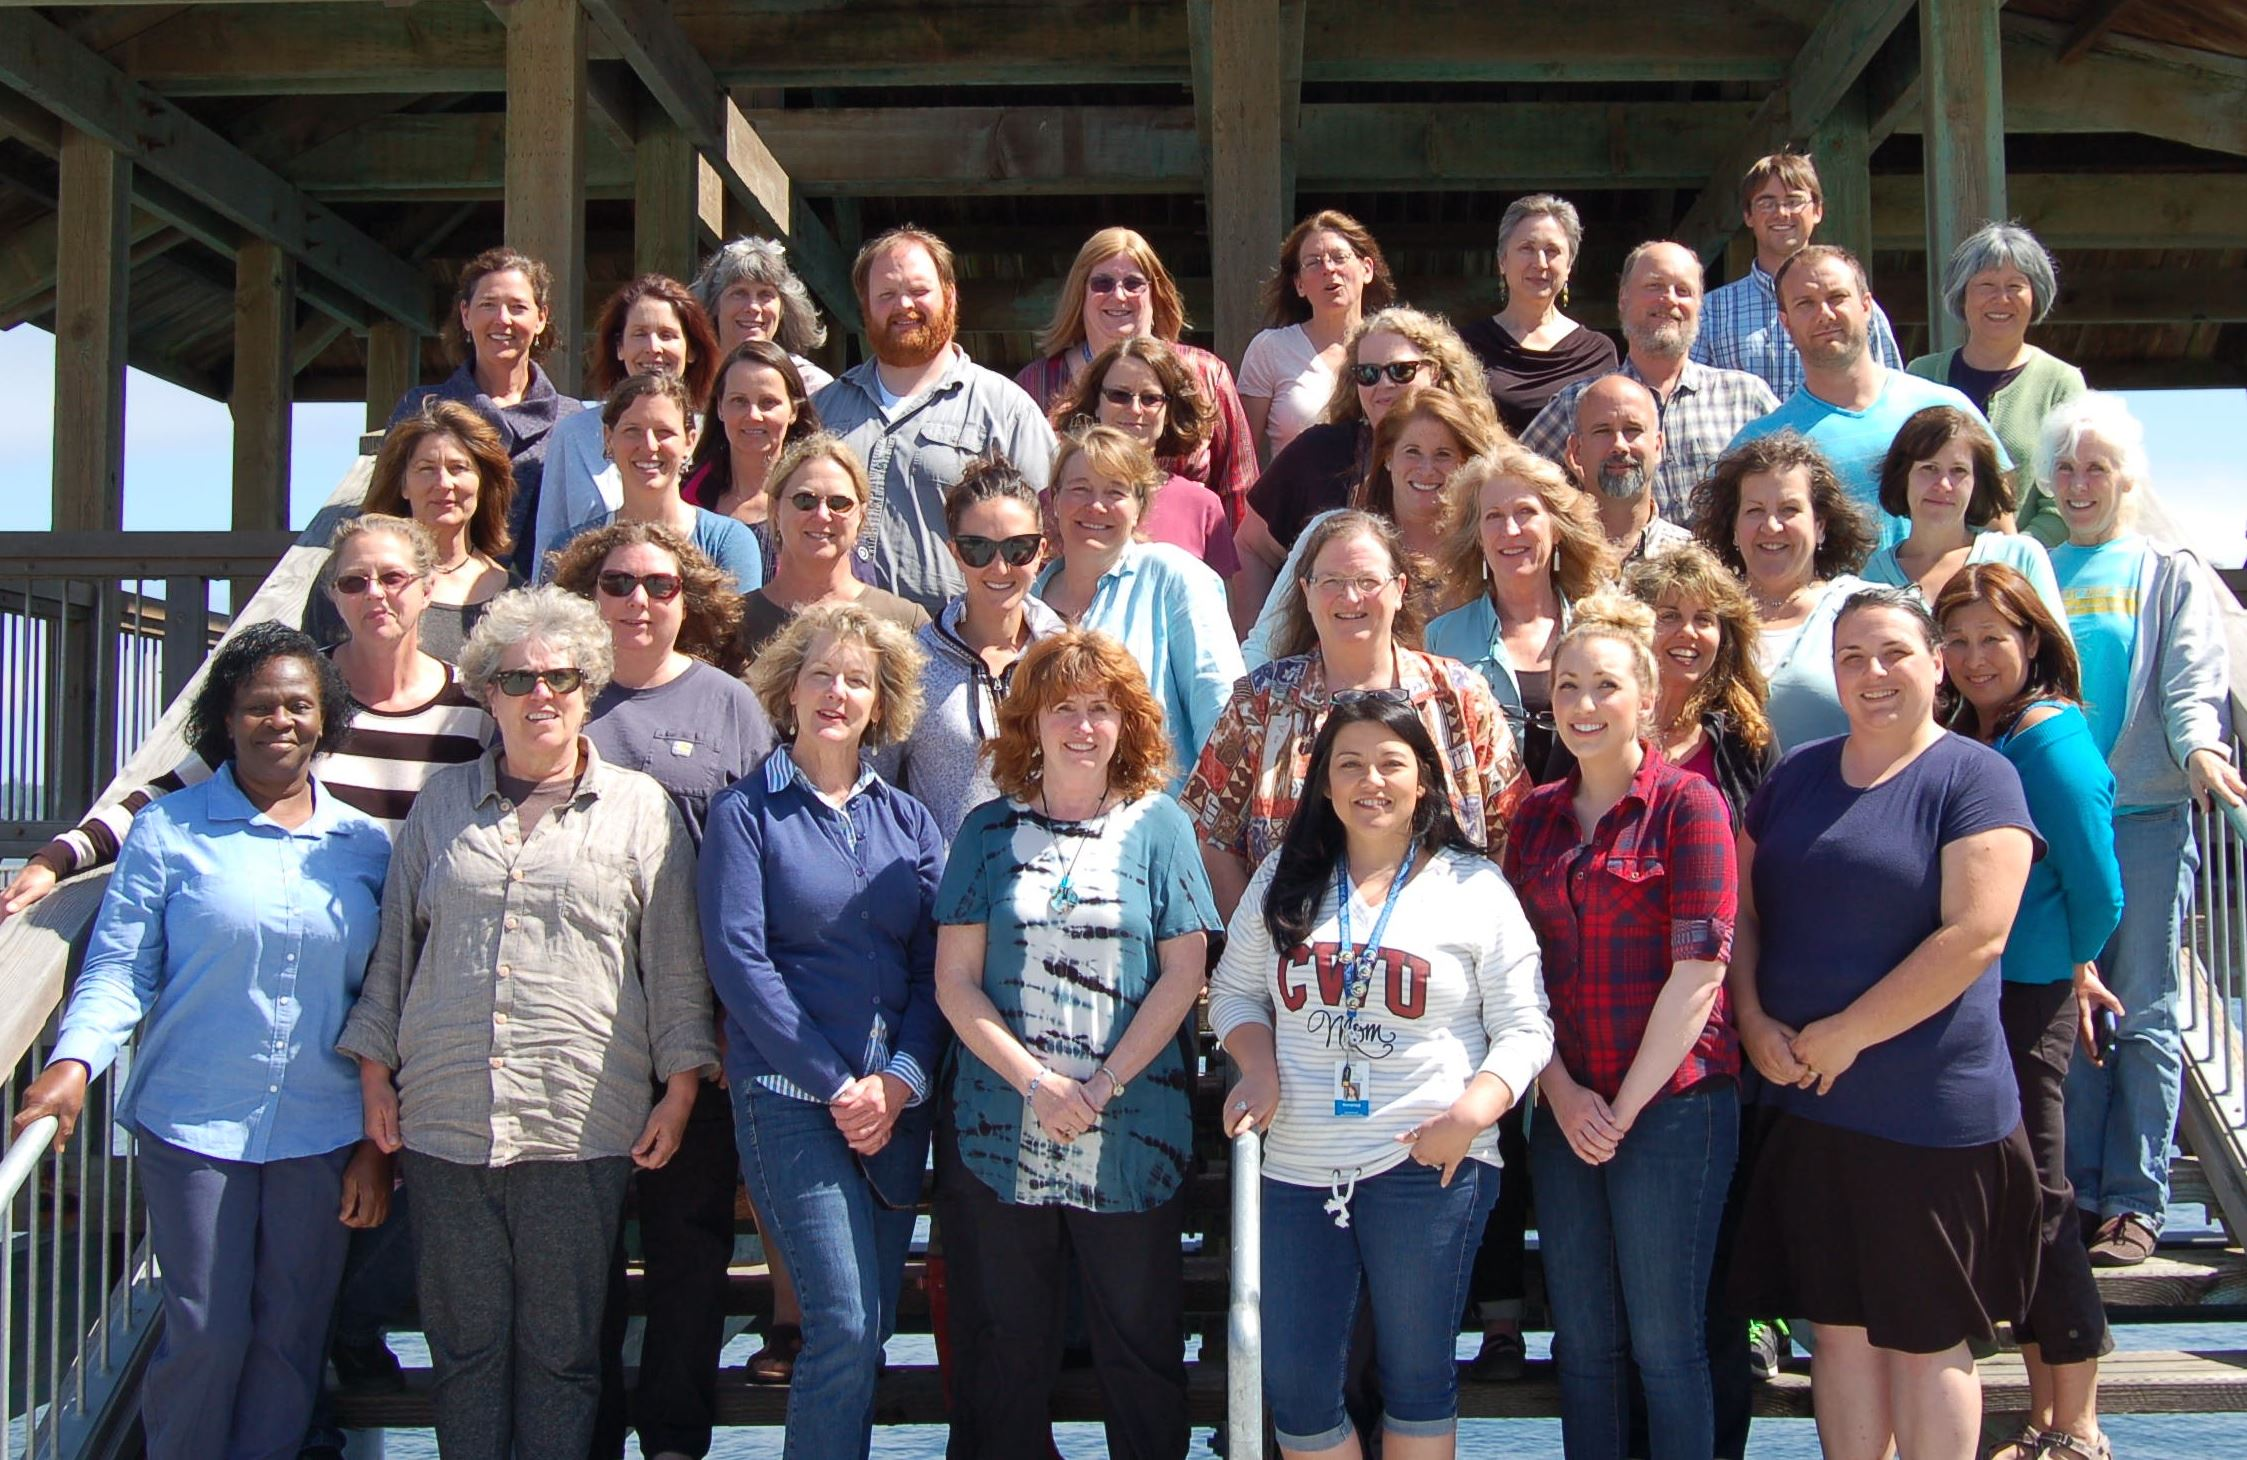 July 2016 Jefferson County Public Health Staff photo